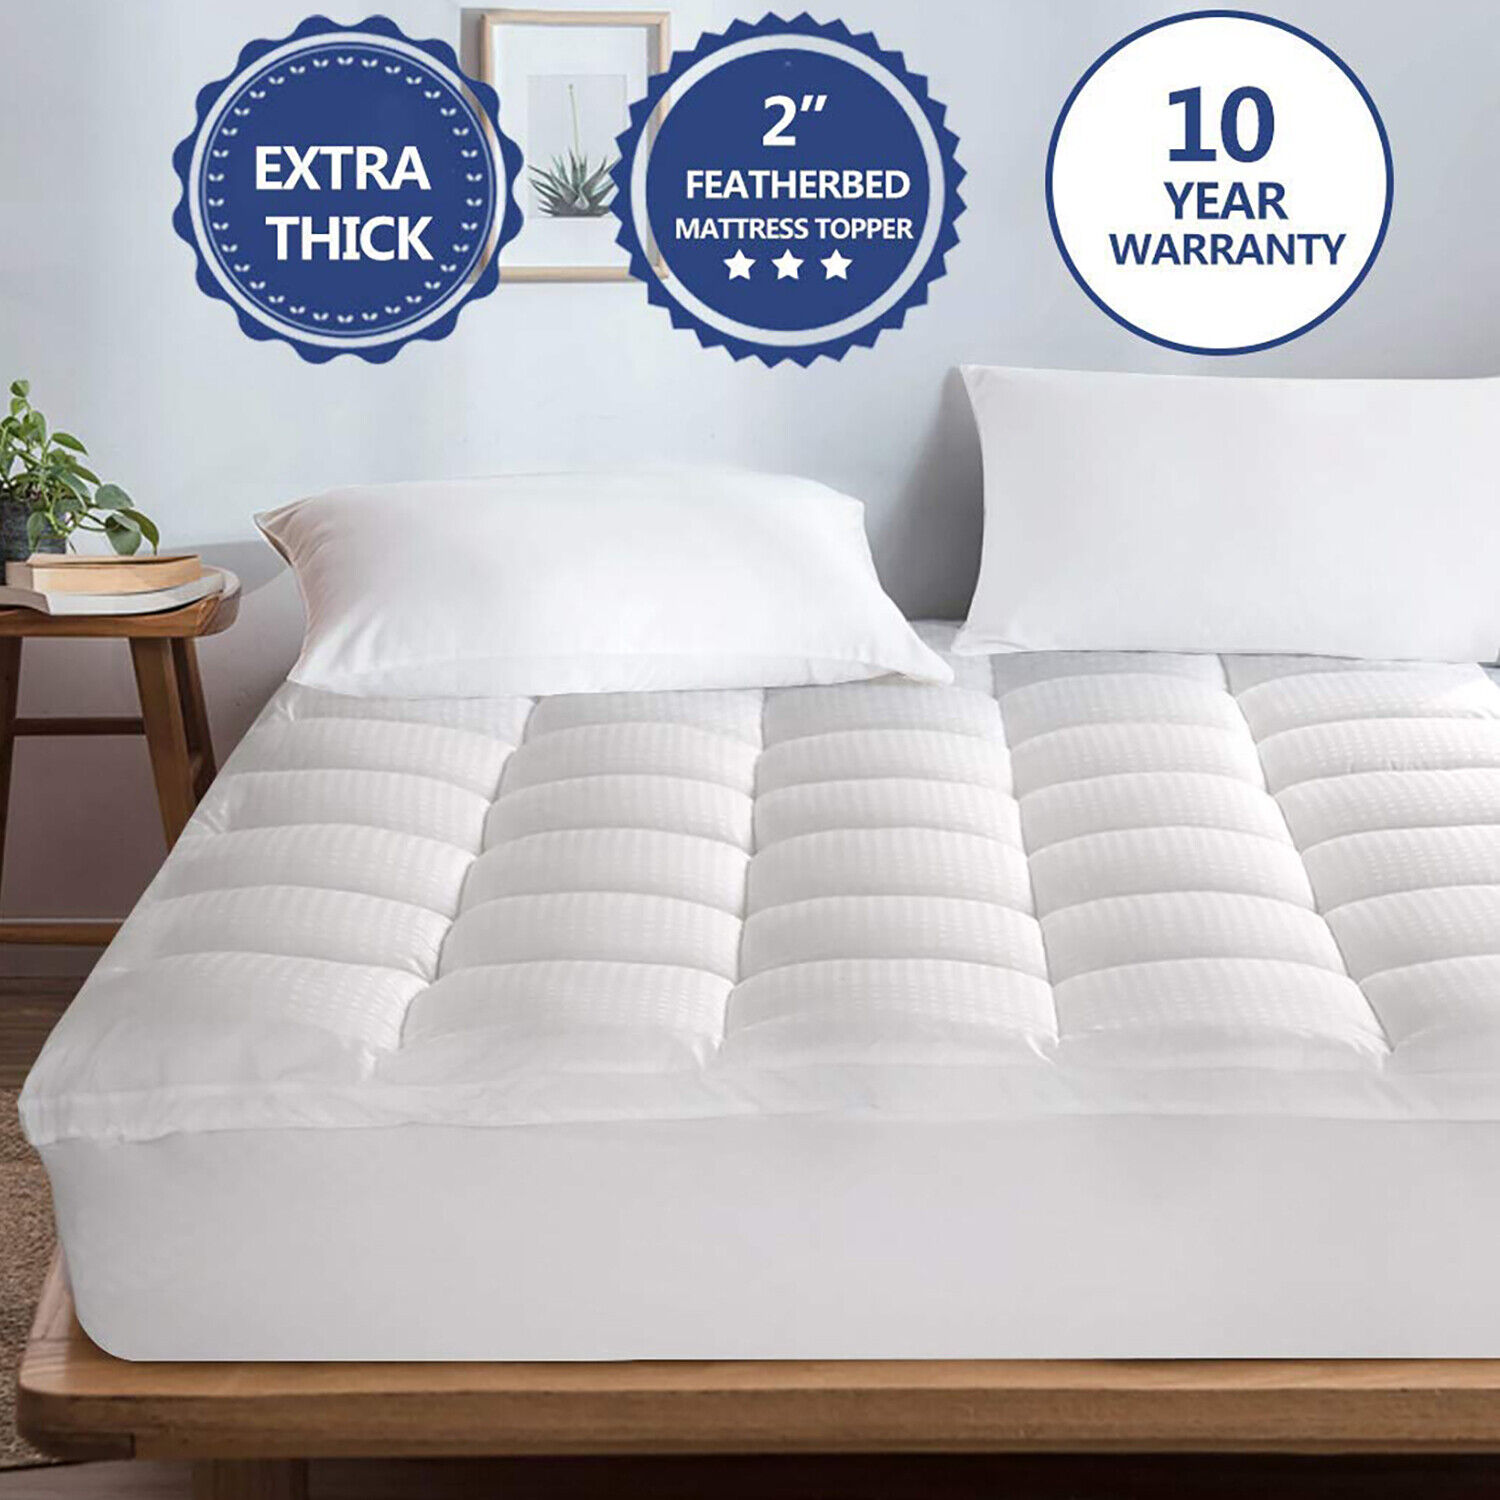 Extra Thick Matress Pad Pillow Top Cooling Fitted Mattress Topper Cotton Cover